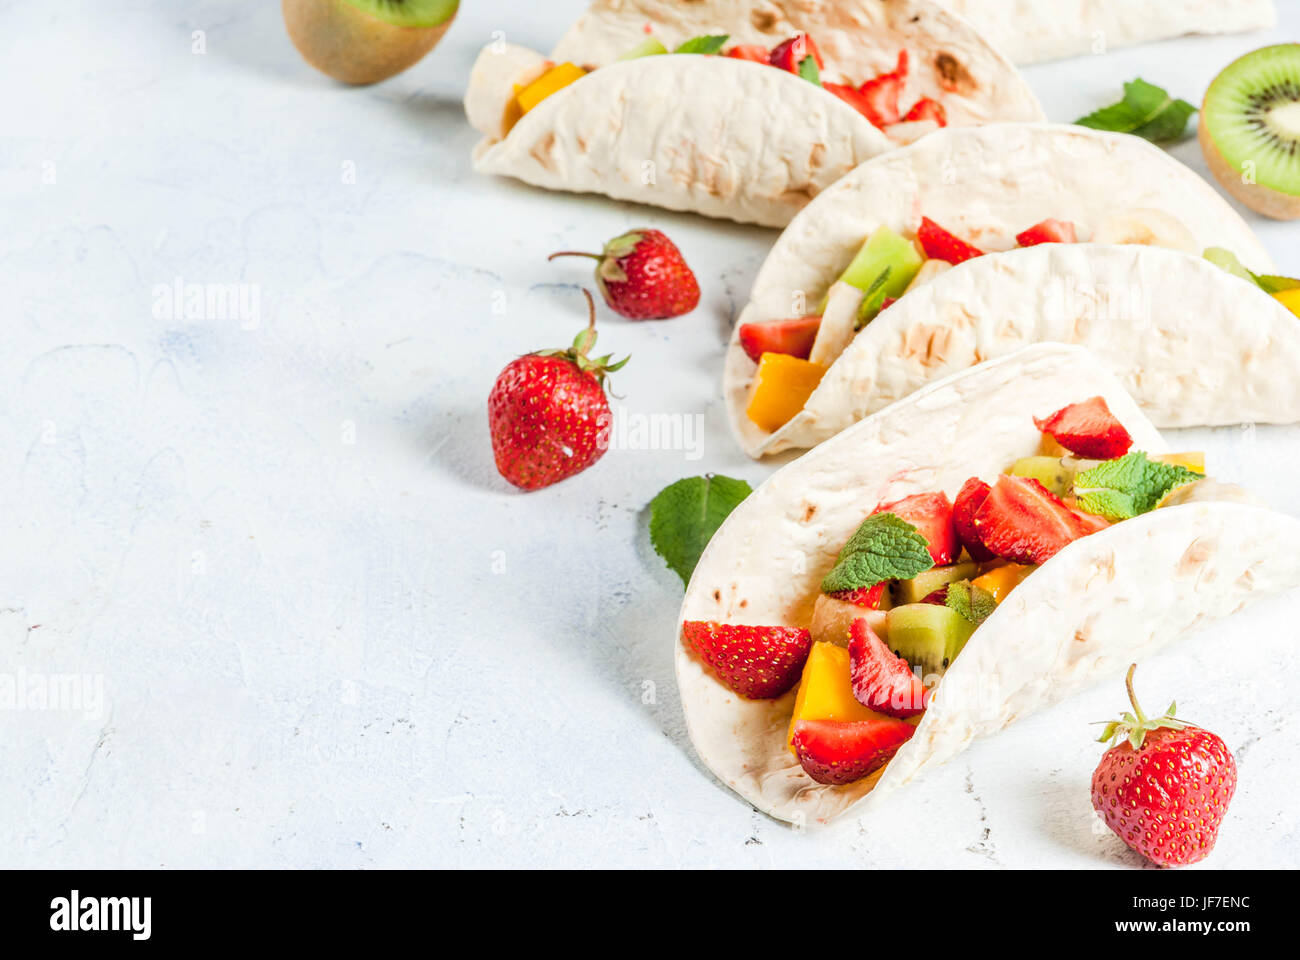 Summer snacks. Food for a party. Fruit tacos with strawberries, mangoes, bananas, chocolate, mint. On a light blue - Stock Image